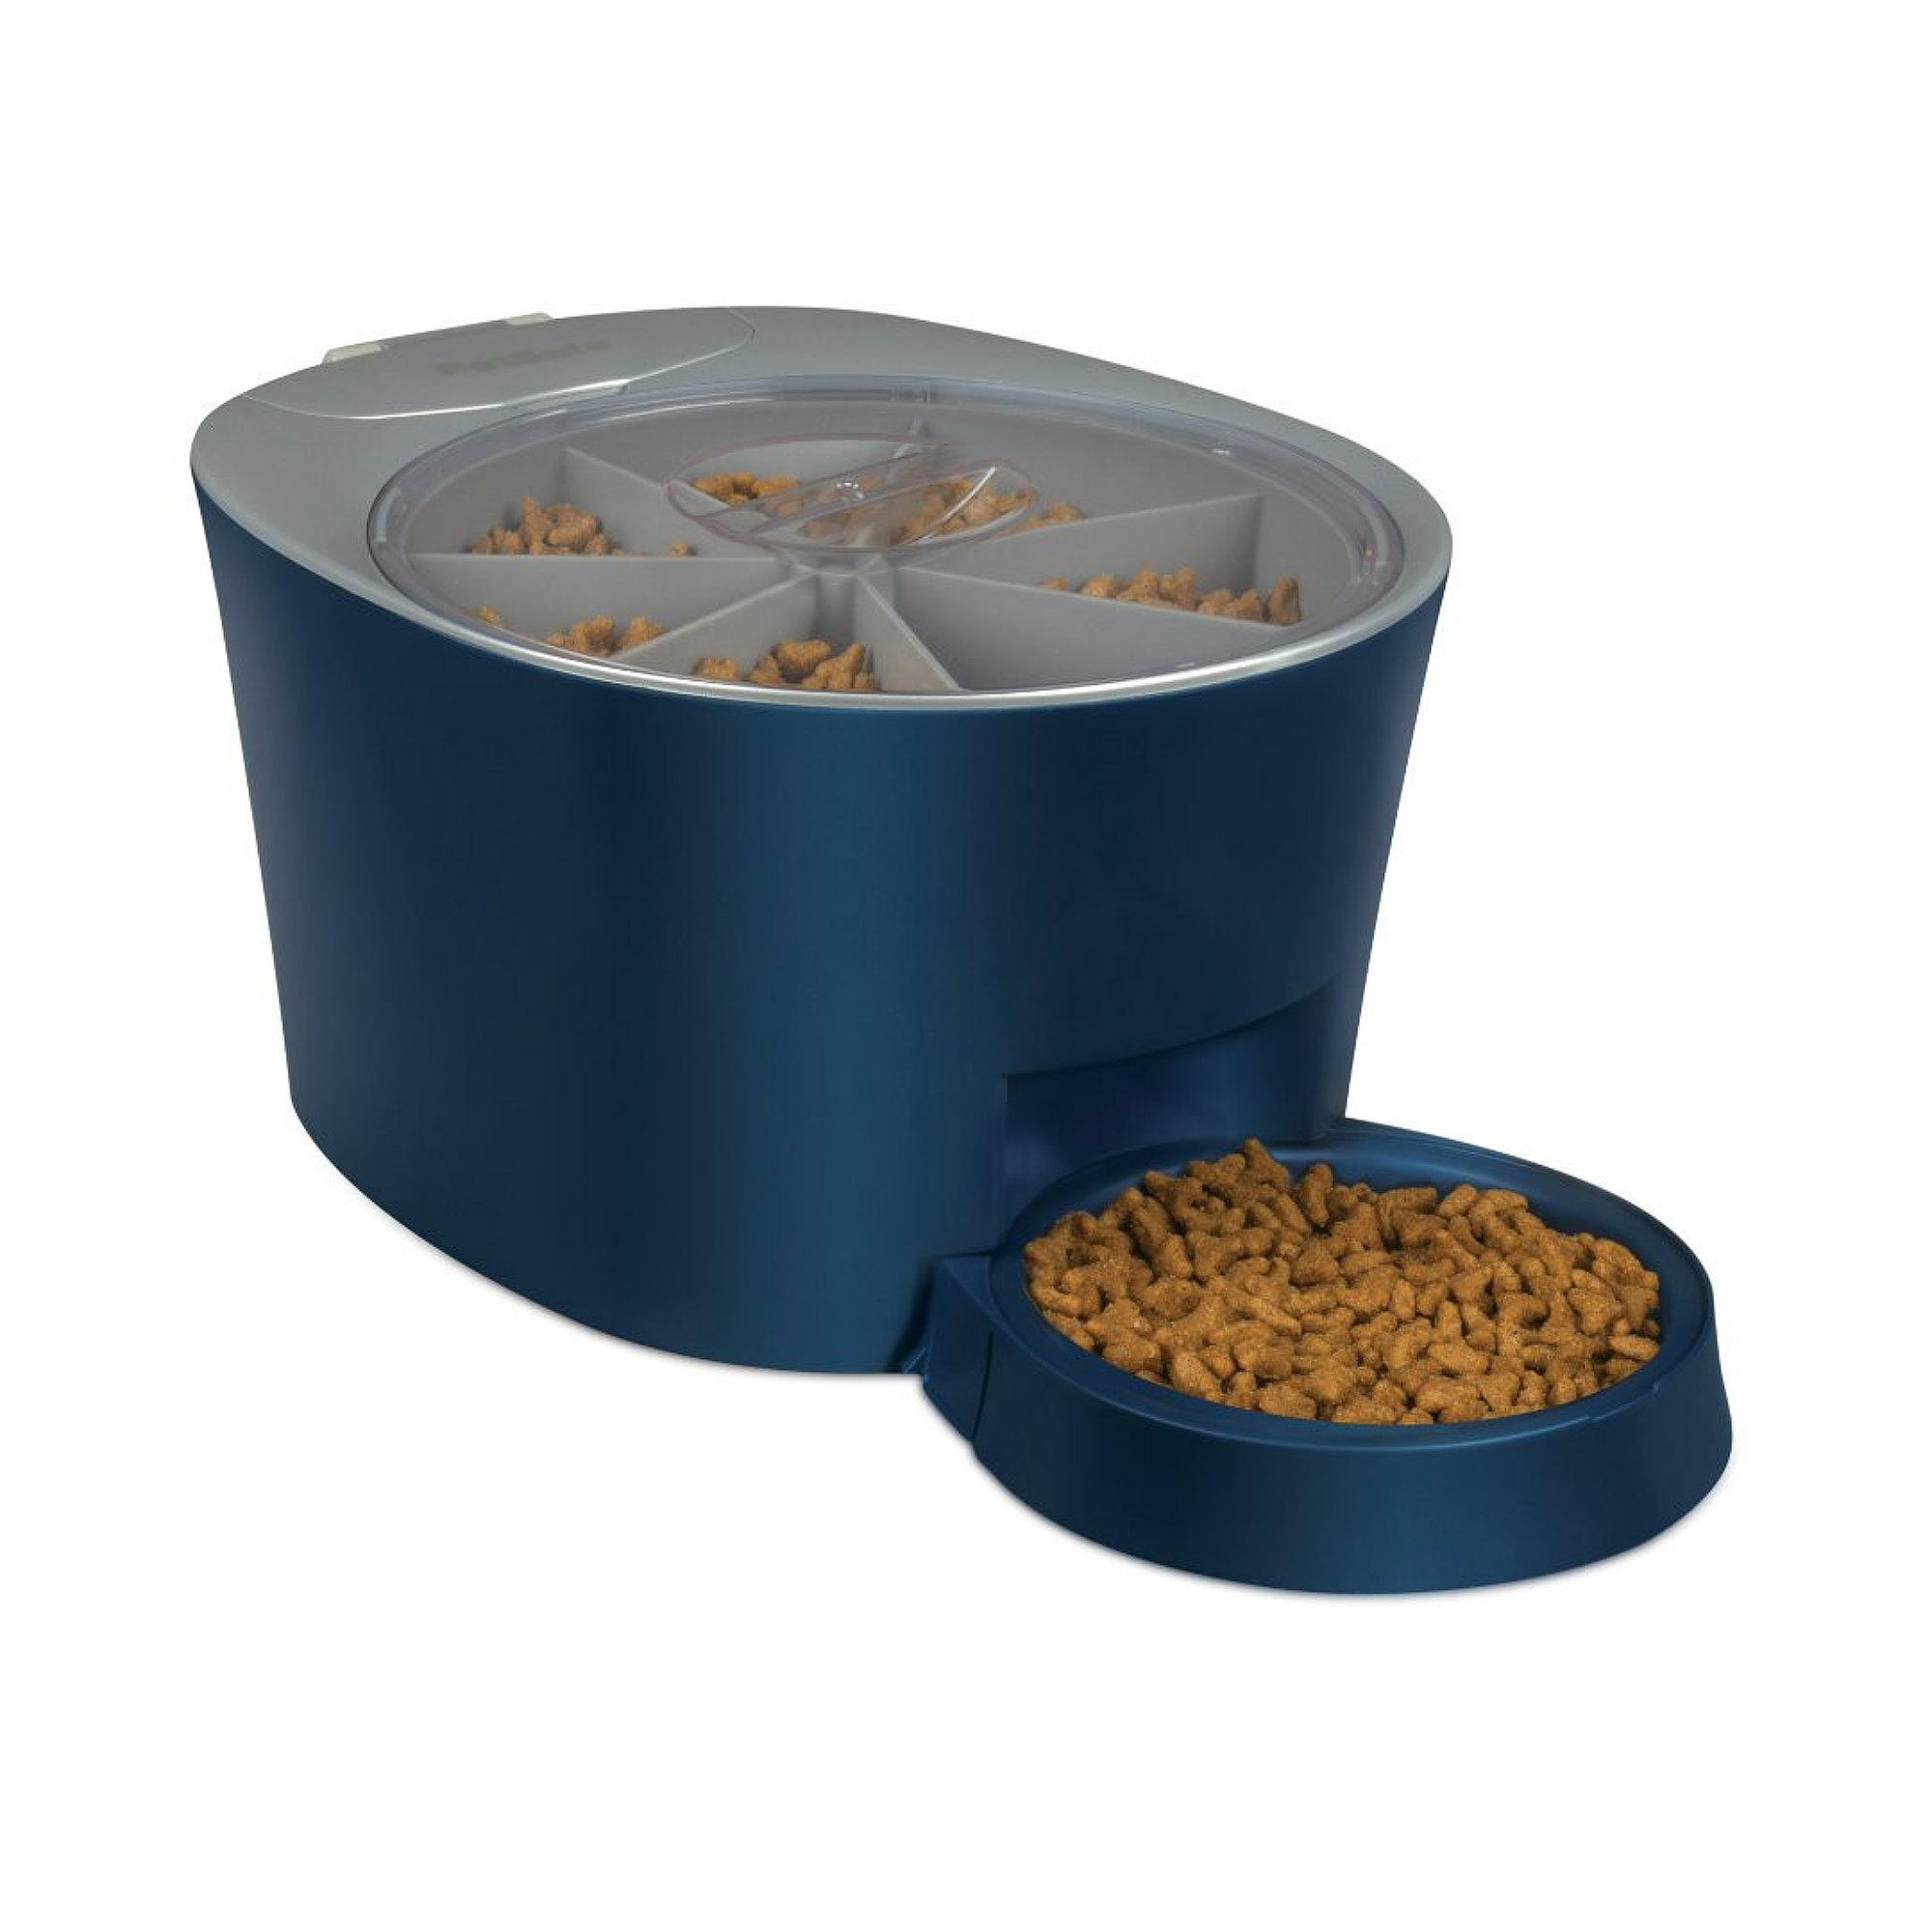 you pet free allows dry lid pest to cropped use fresh large pour system kennel here dispenser and keeps easy food s plus vault feeder it in the feeders dog waterer how automatic works